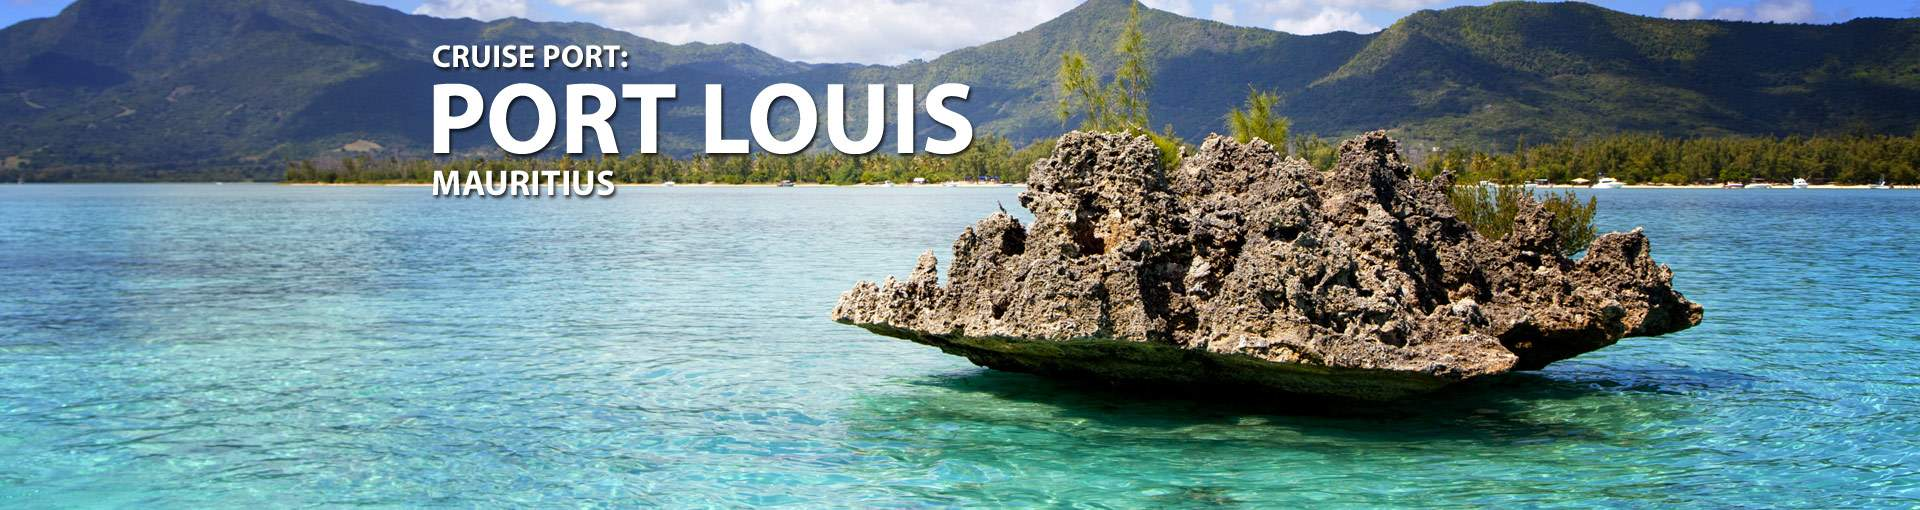 Cruises from Port Louis, Mauritius